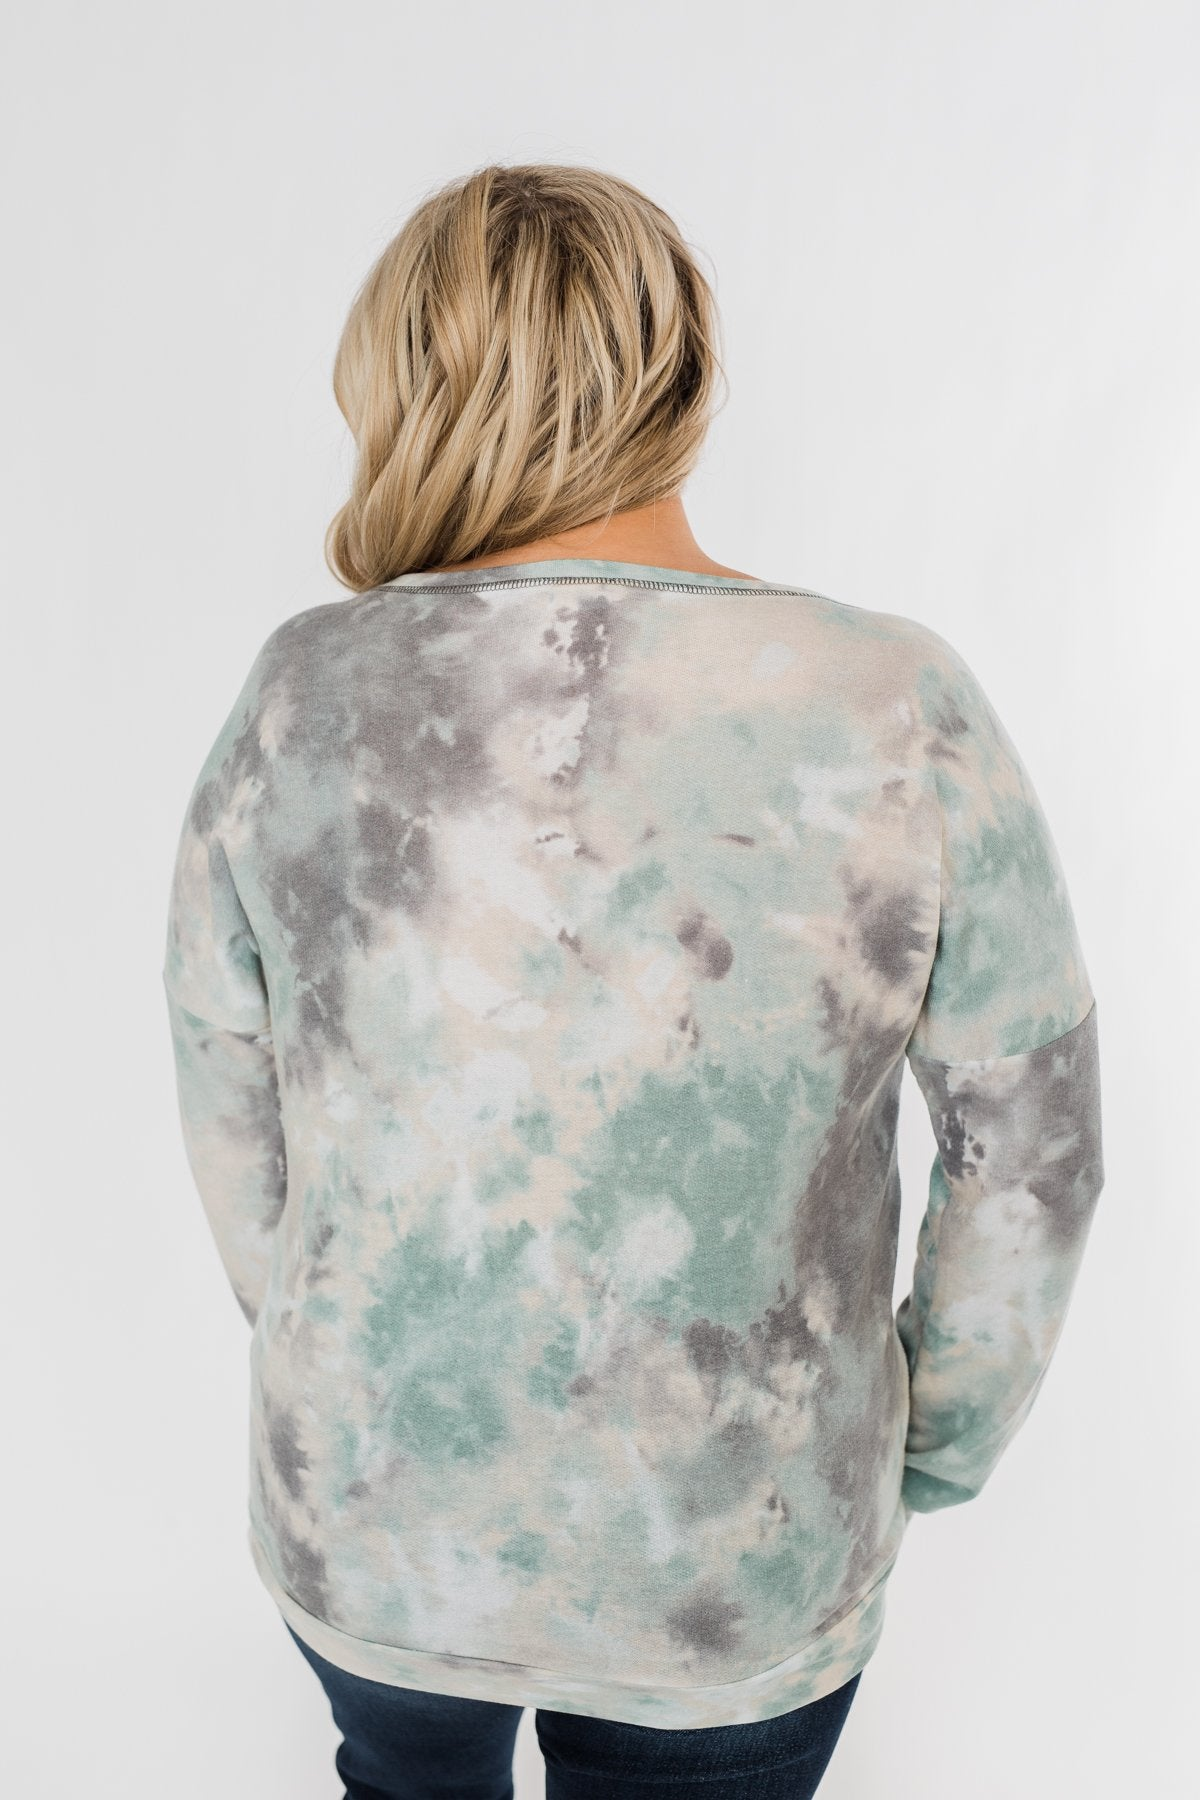 Lost In This Moment Tie Dye Pullover Top- Sage, Oatmeal, Grey